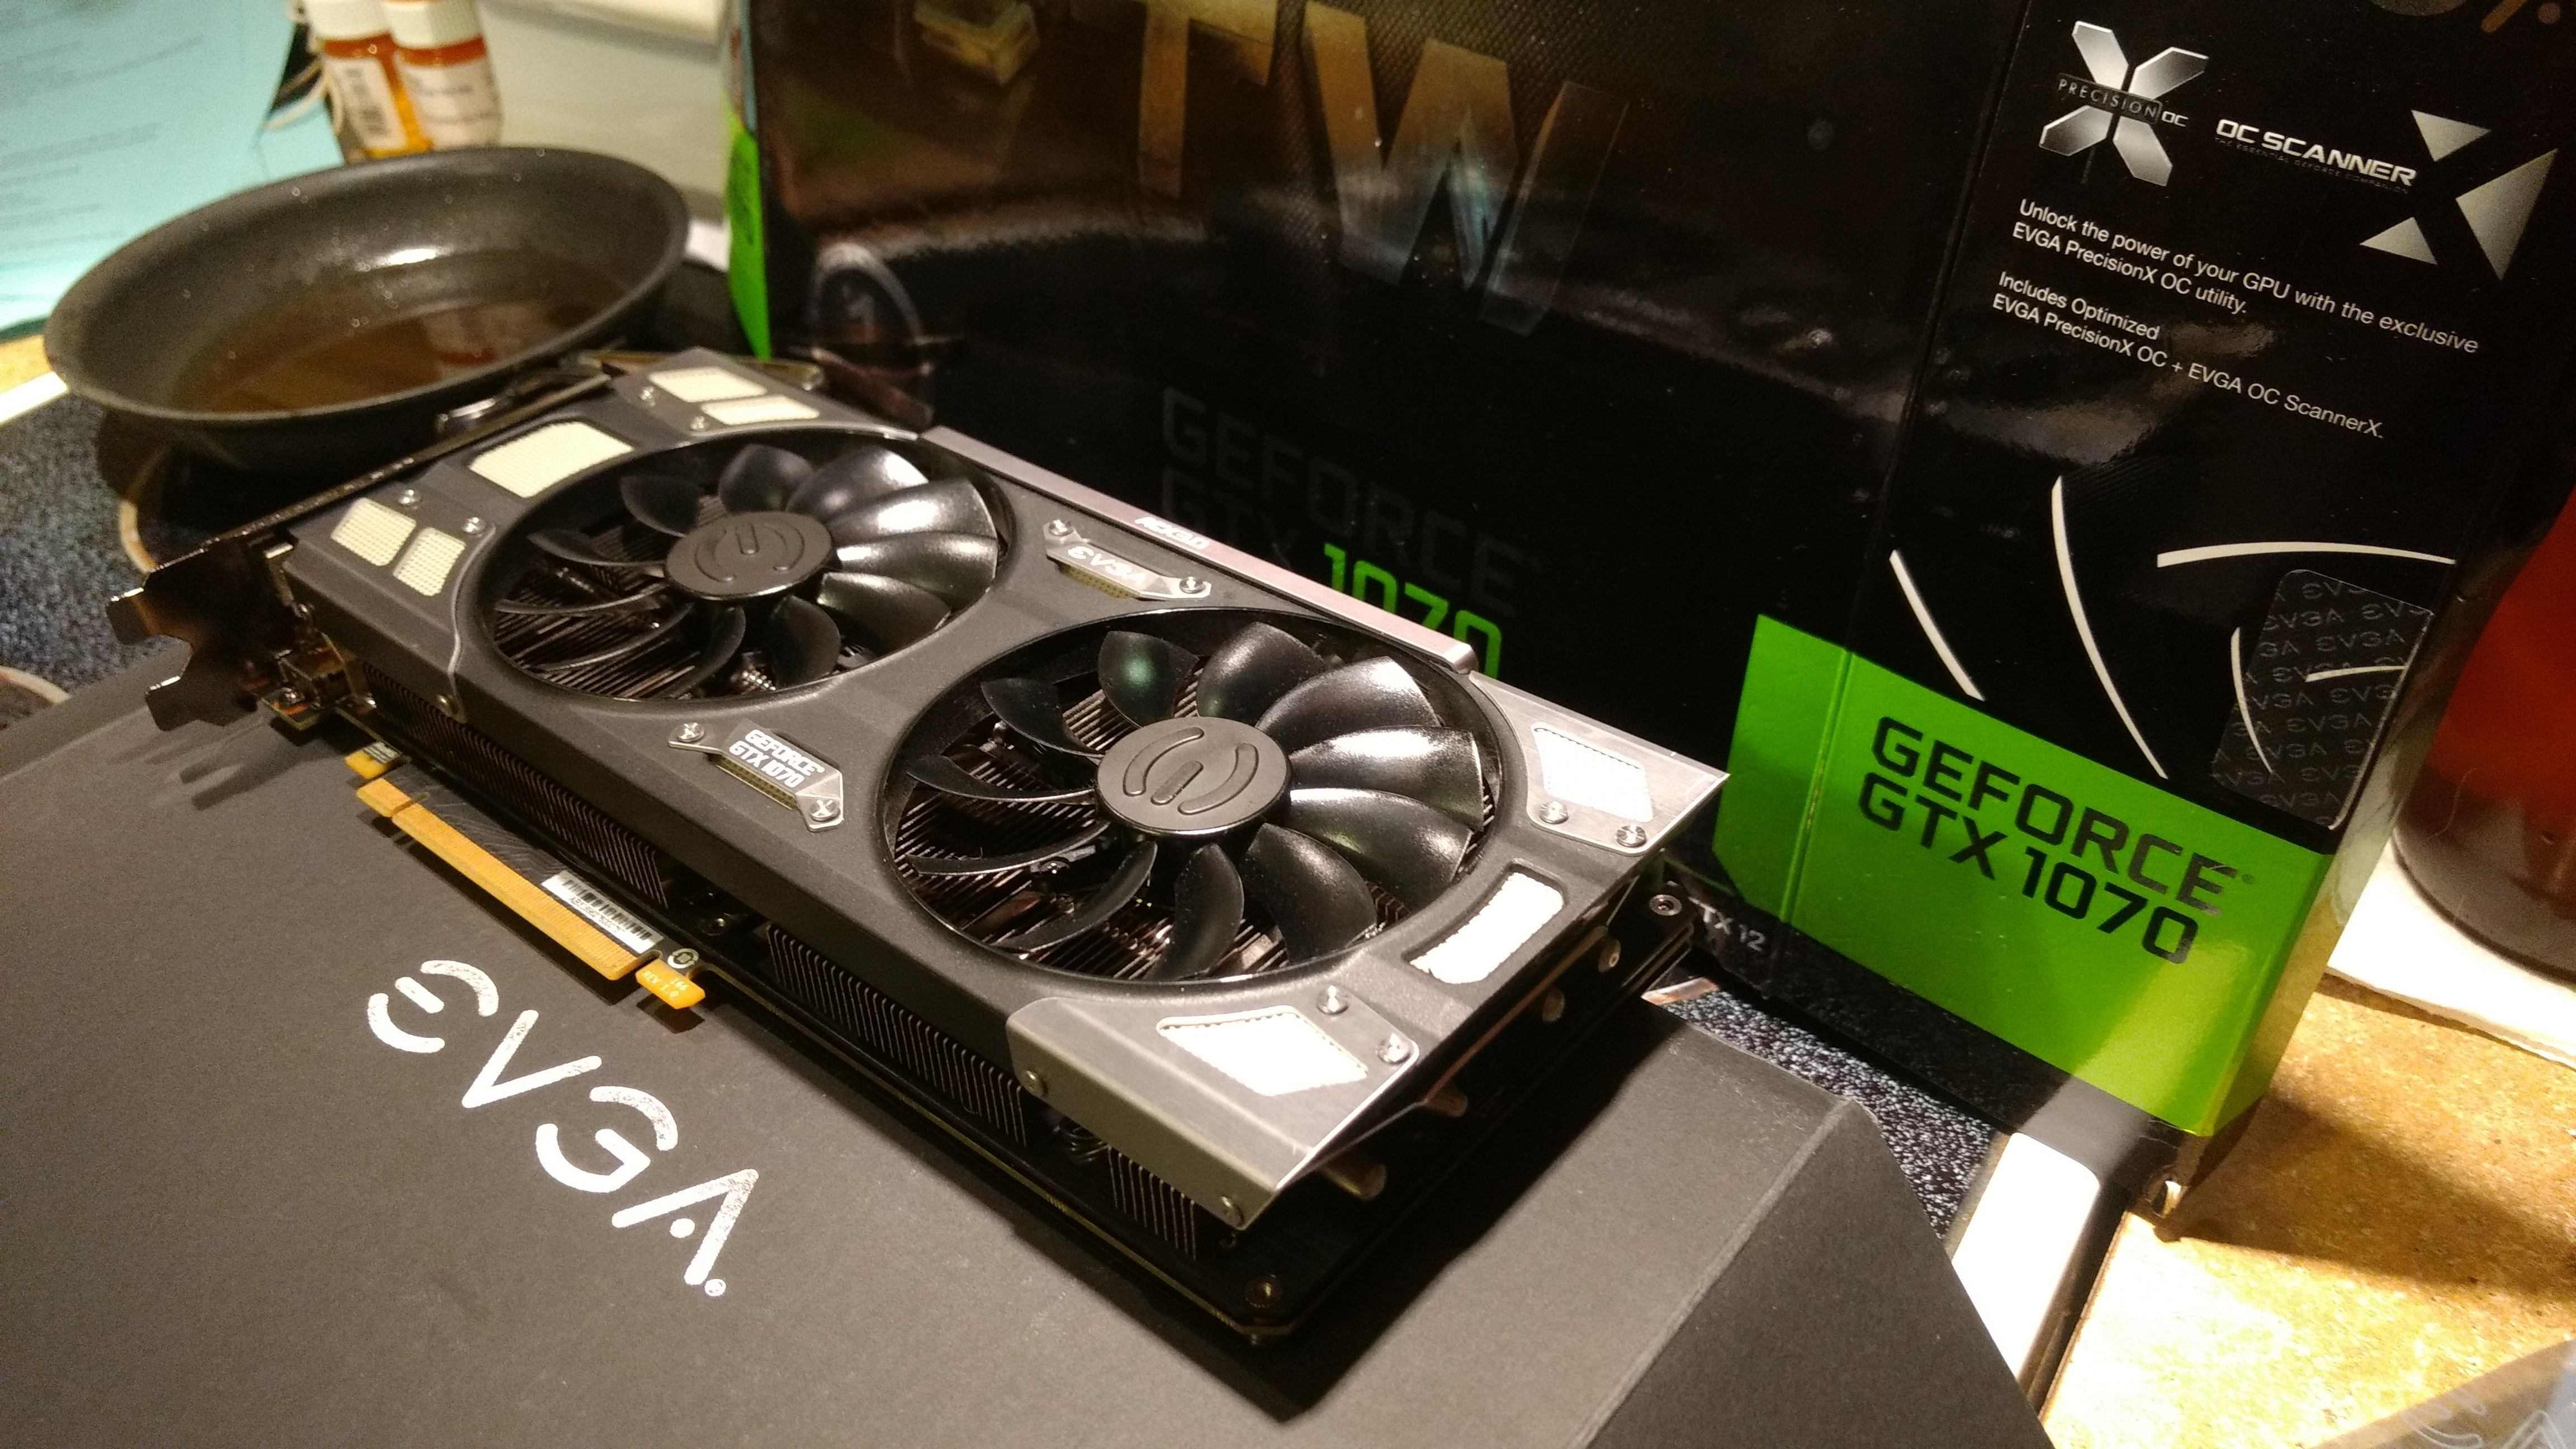 How To Use Evga Oc Scanner